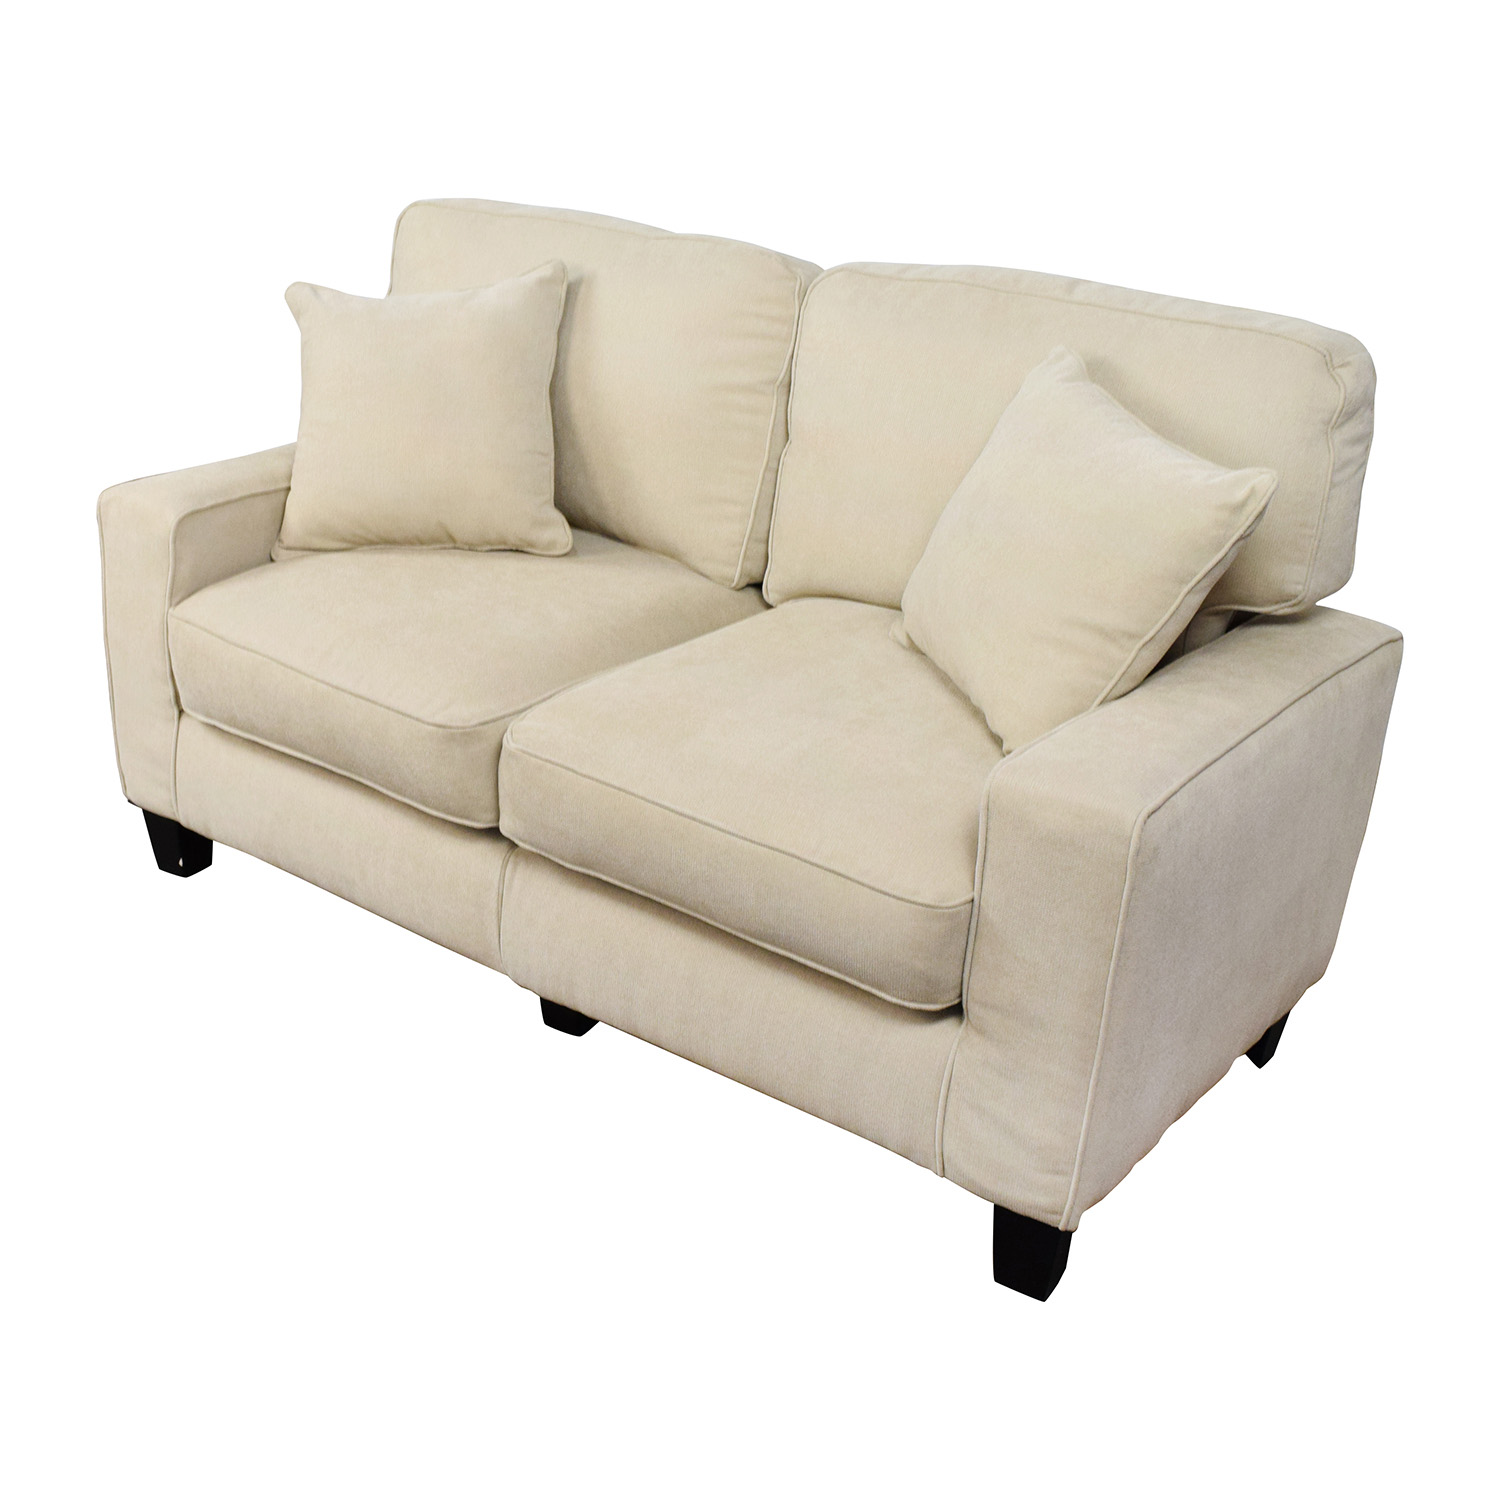 39 Off Target Target Tan Loveseat Sofa Sofas